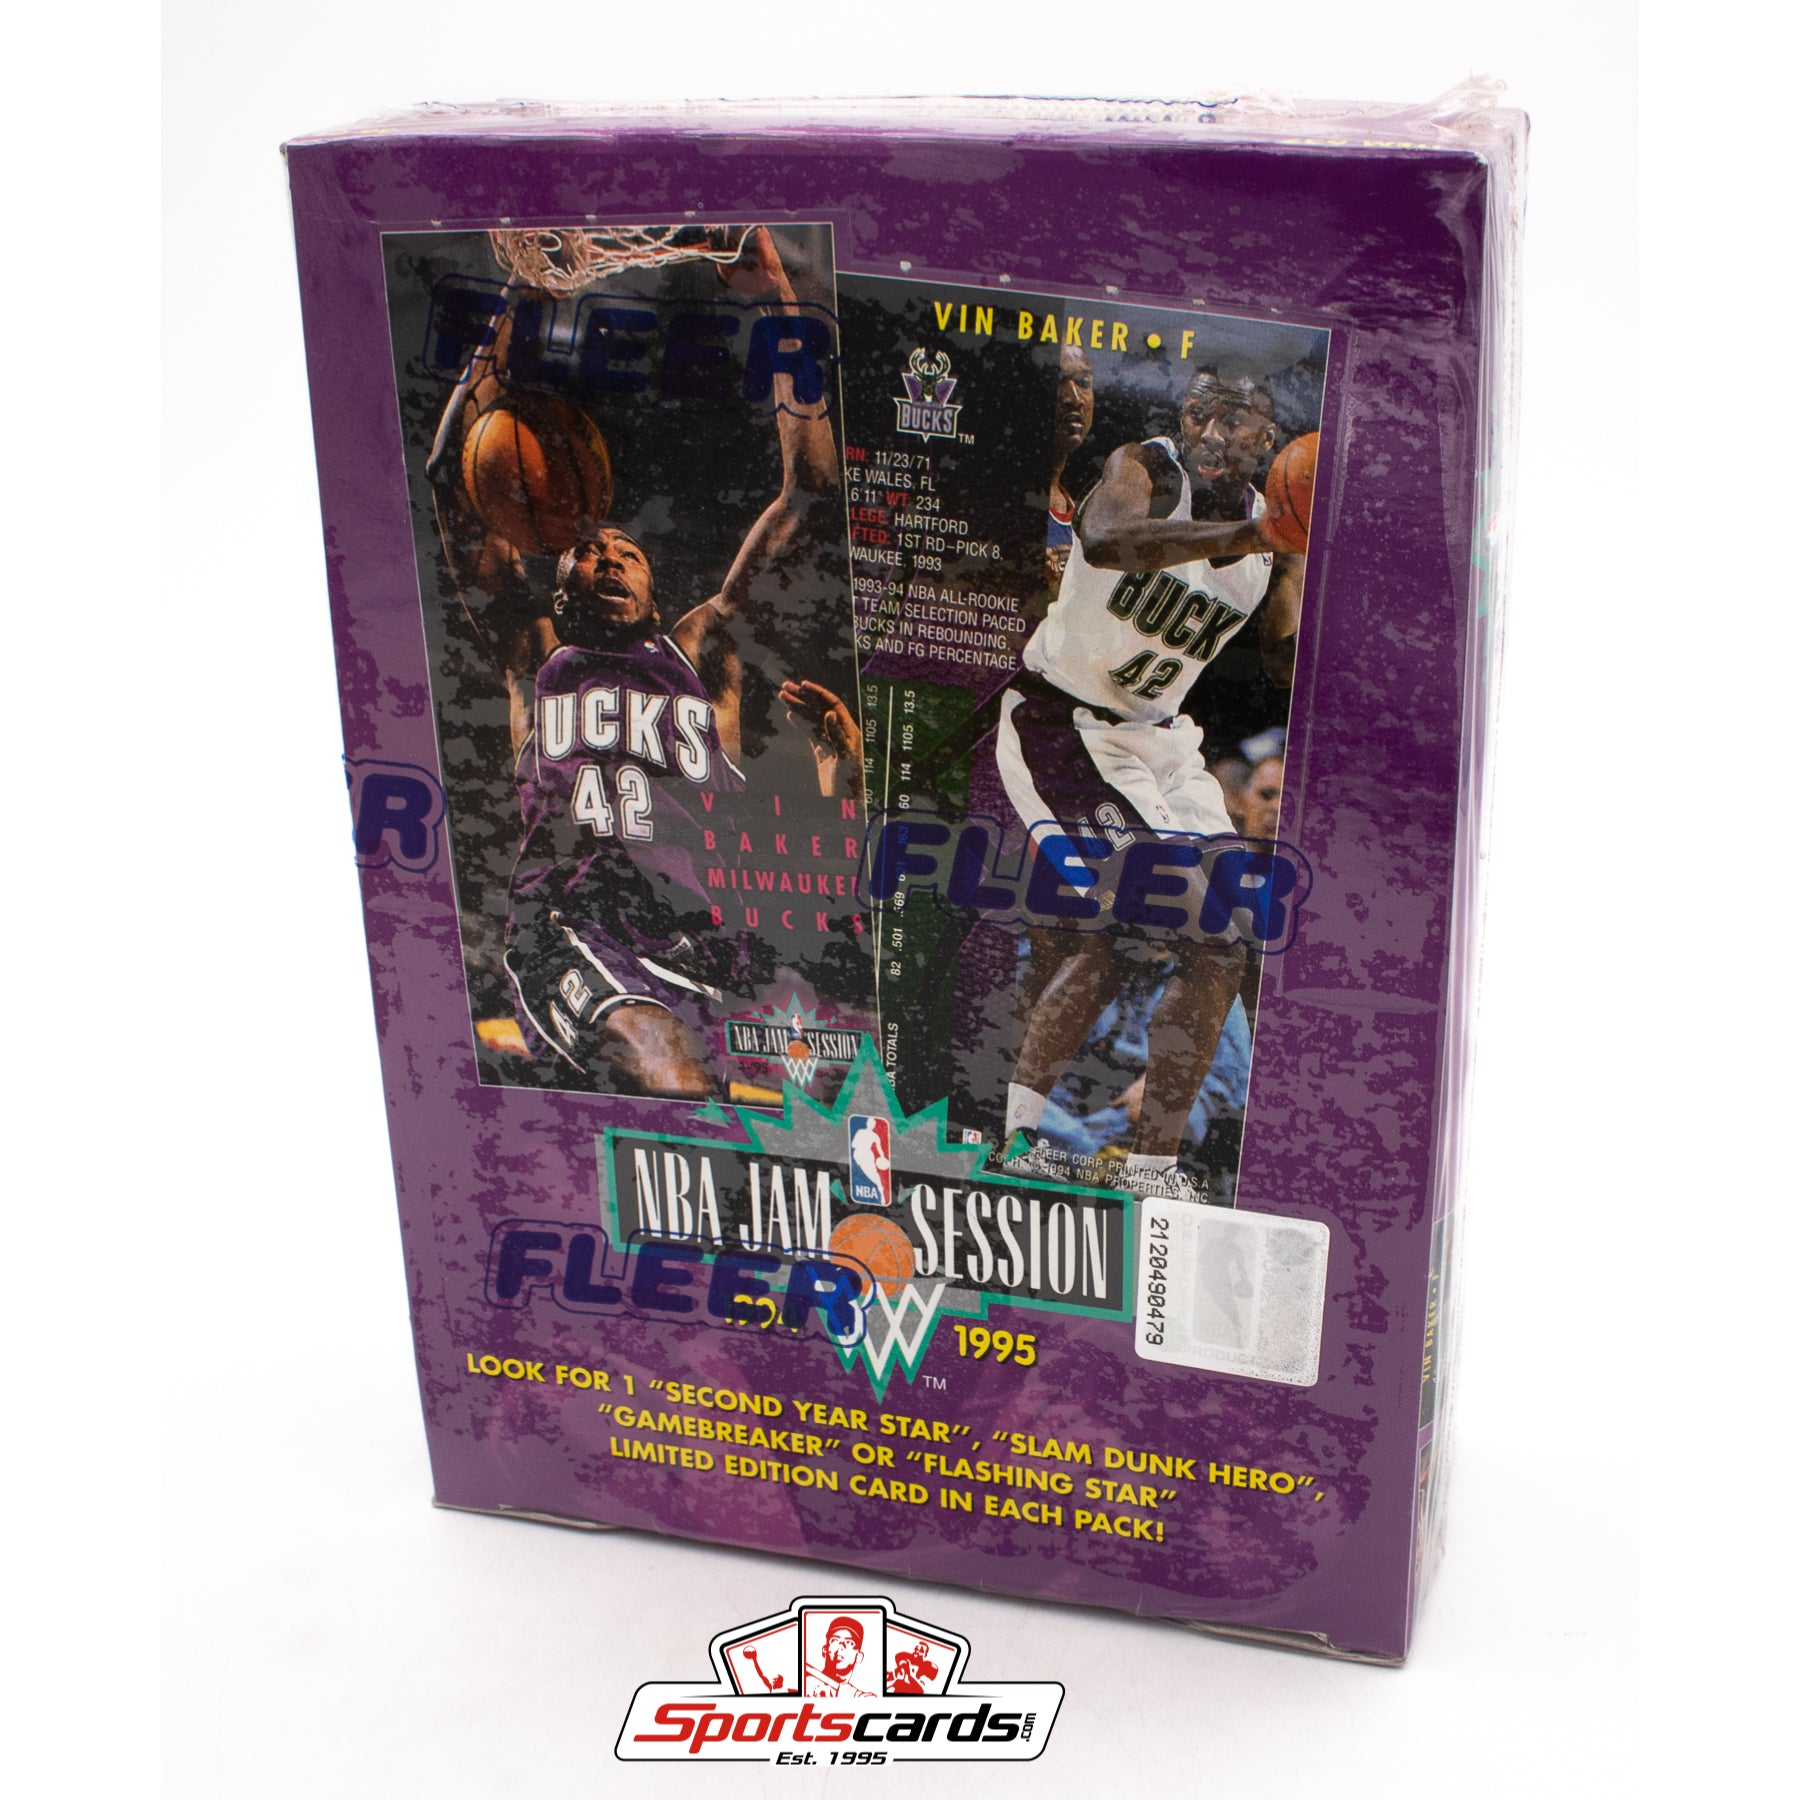 1994-95 Fleer NBA Jam Session Factory Sealed Box Kidd Hill RC Year - 36 Packs